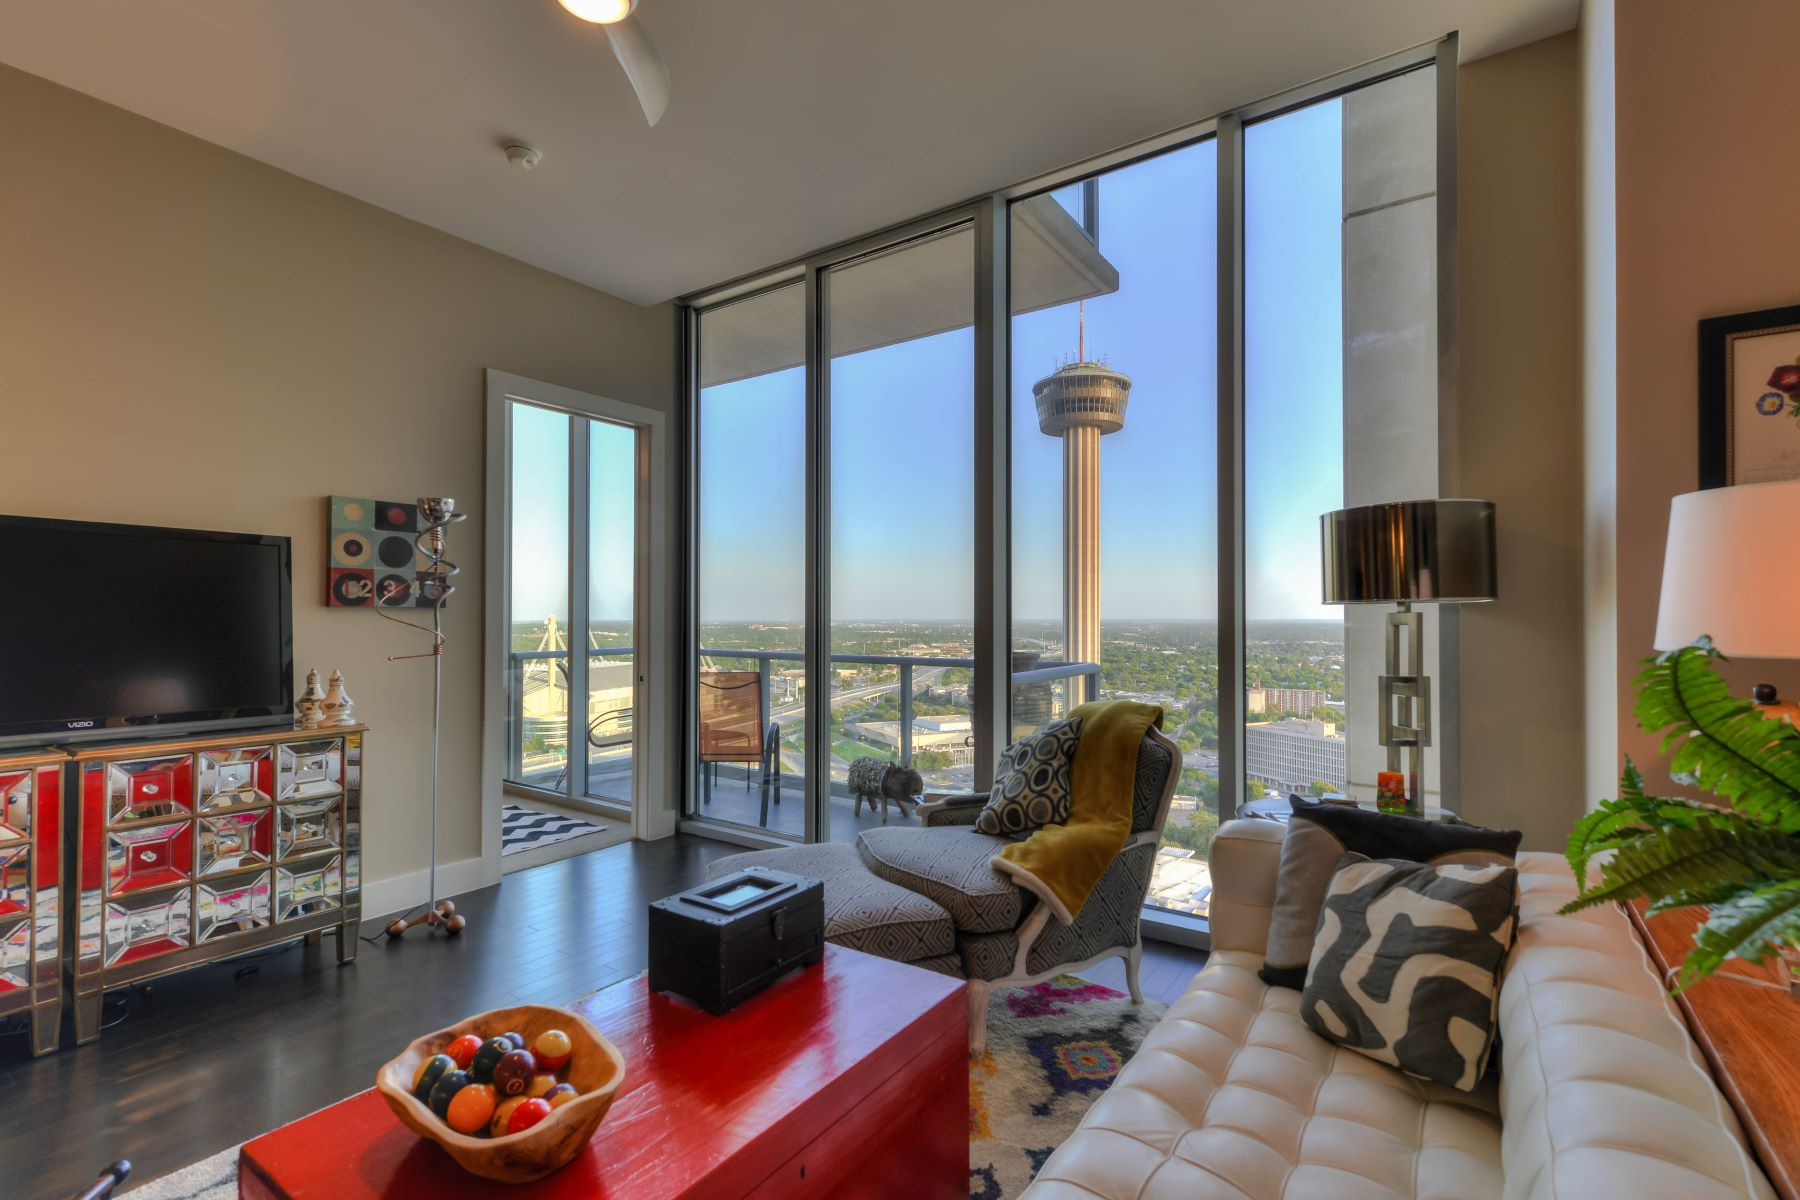 Additional photo for property listing at Luxury Downtown Living At Alteza 610 E Market St 2809 San Antonio, Texas 78205 Estados Unidos